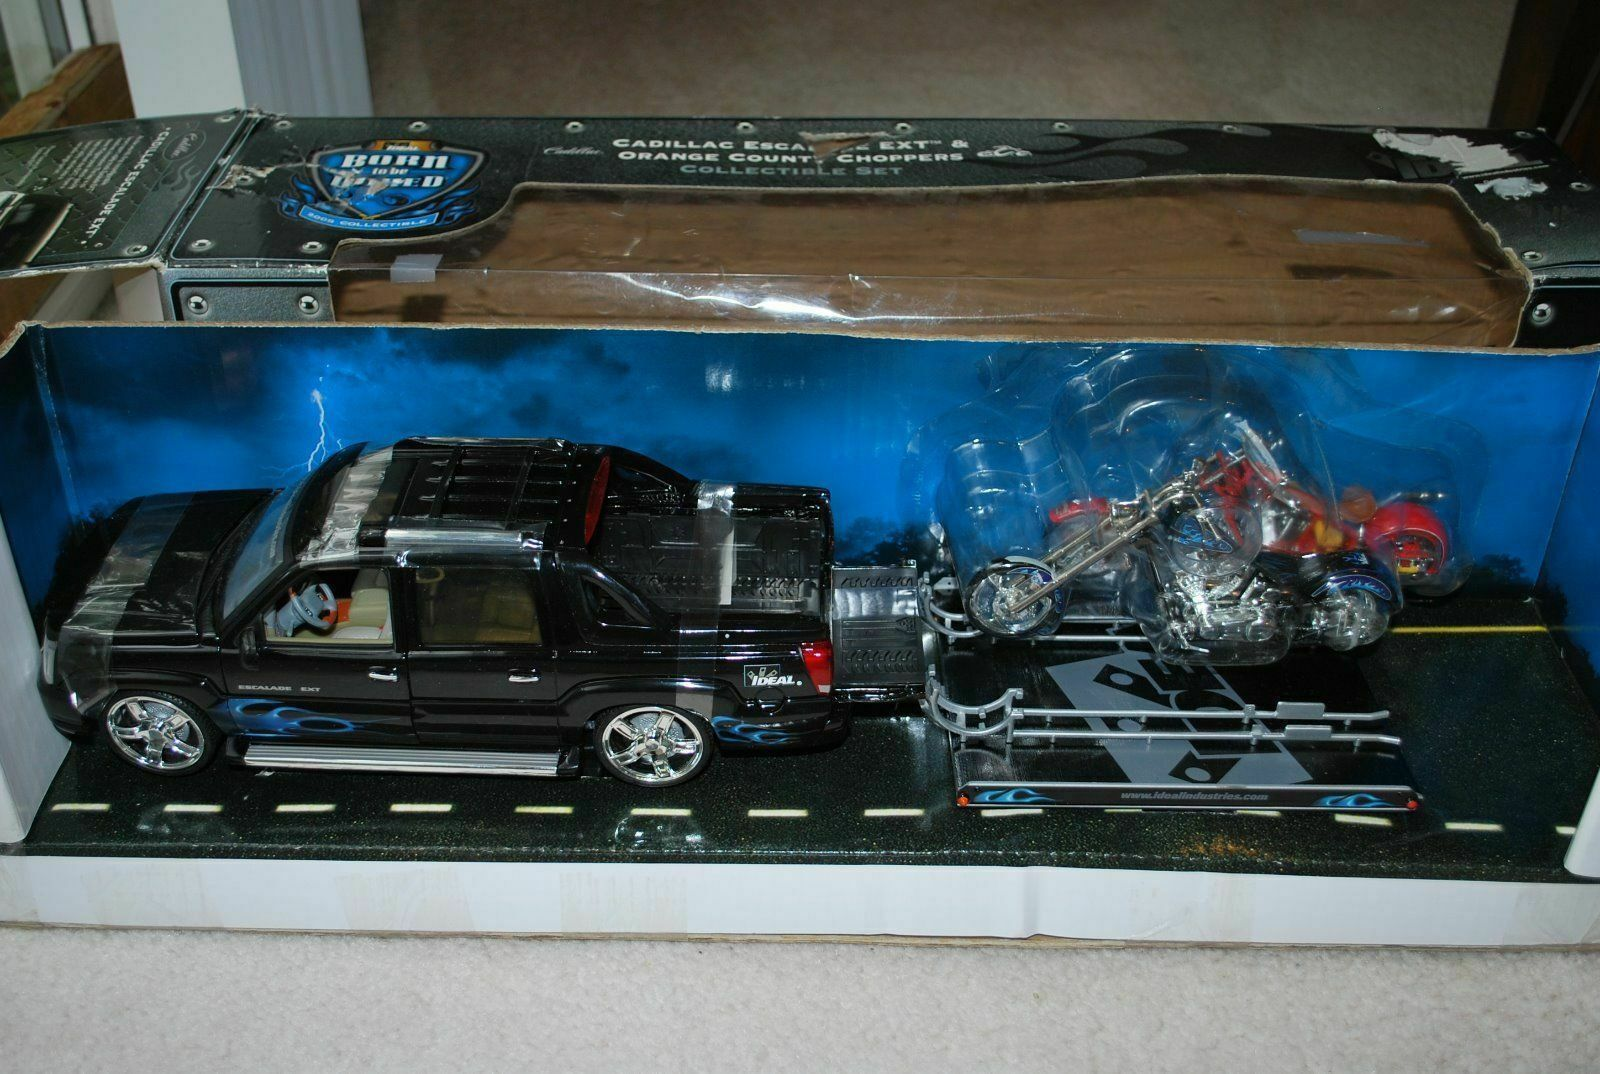 1/18 Cadillac Esacalade EXT pulling a trail with 2 choppers on it, VHTF, AS IS,